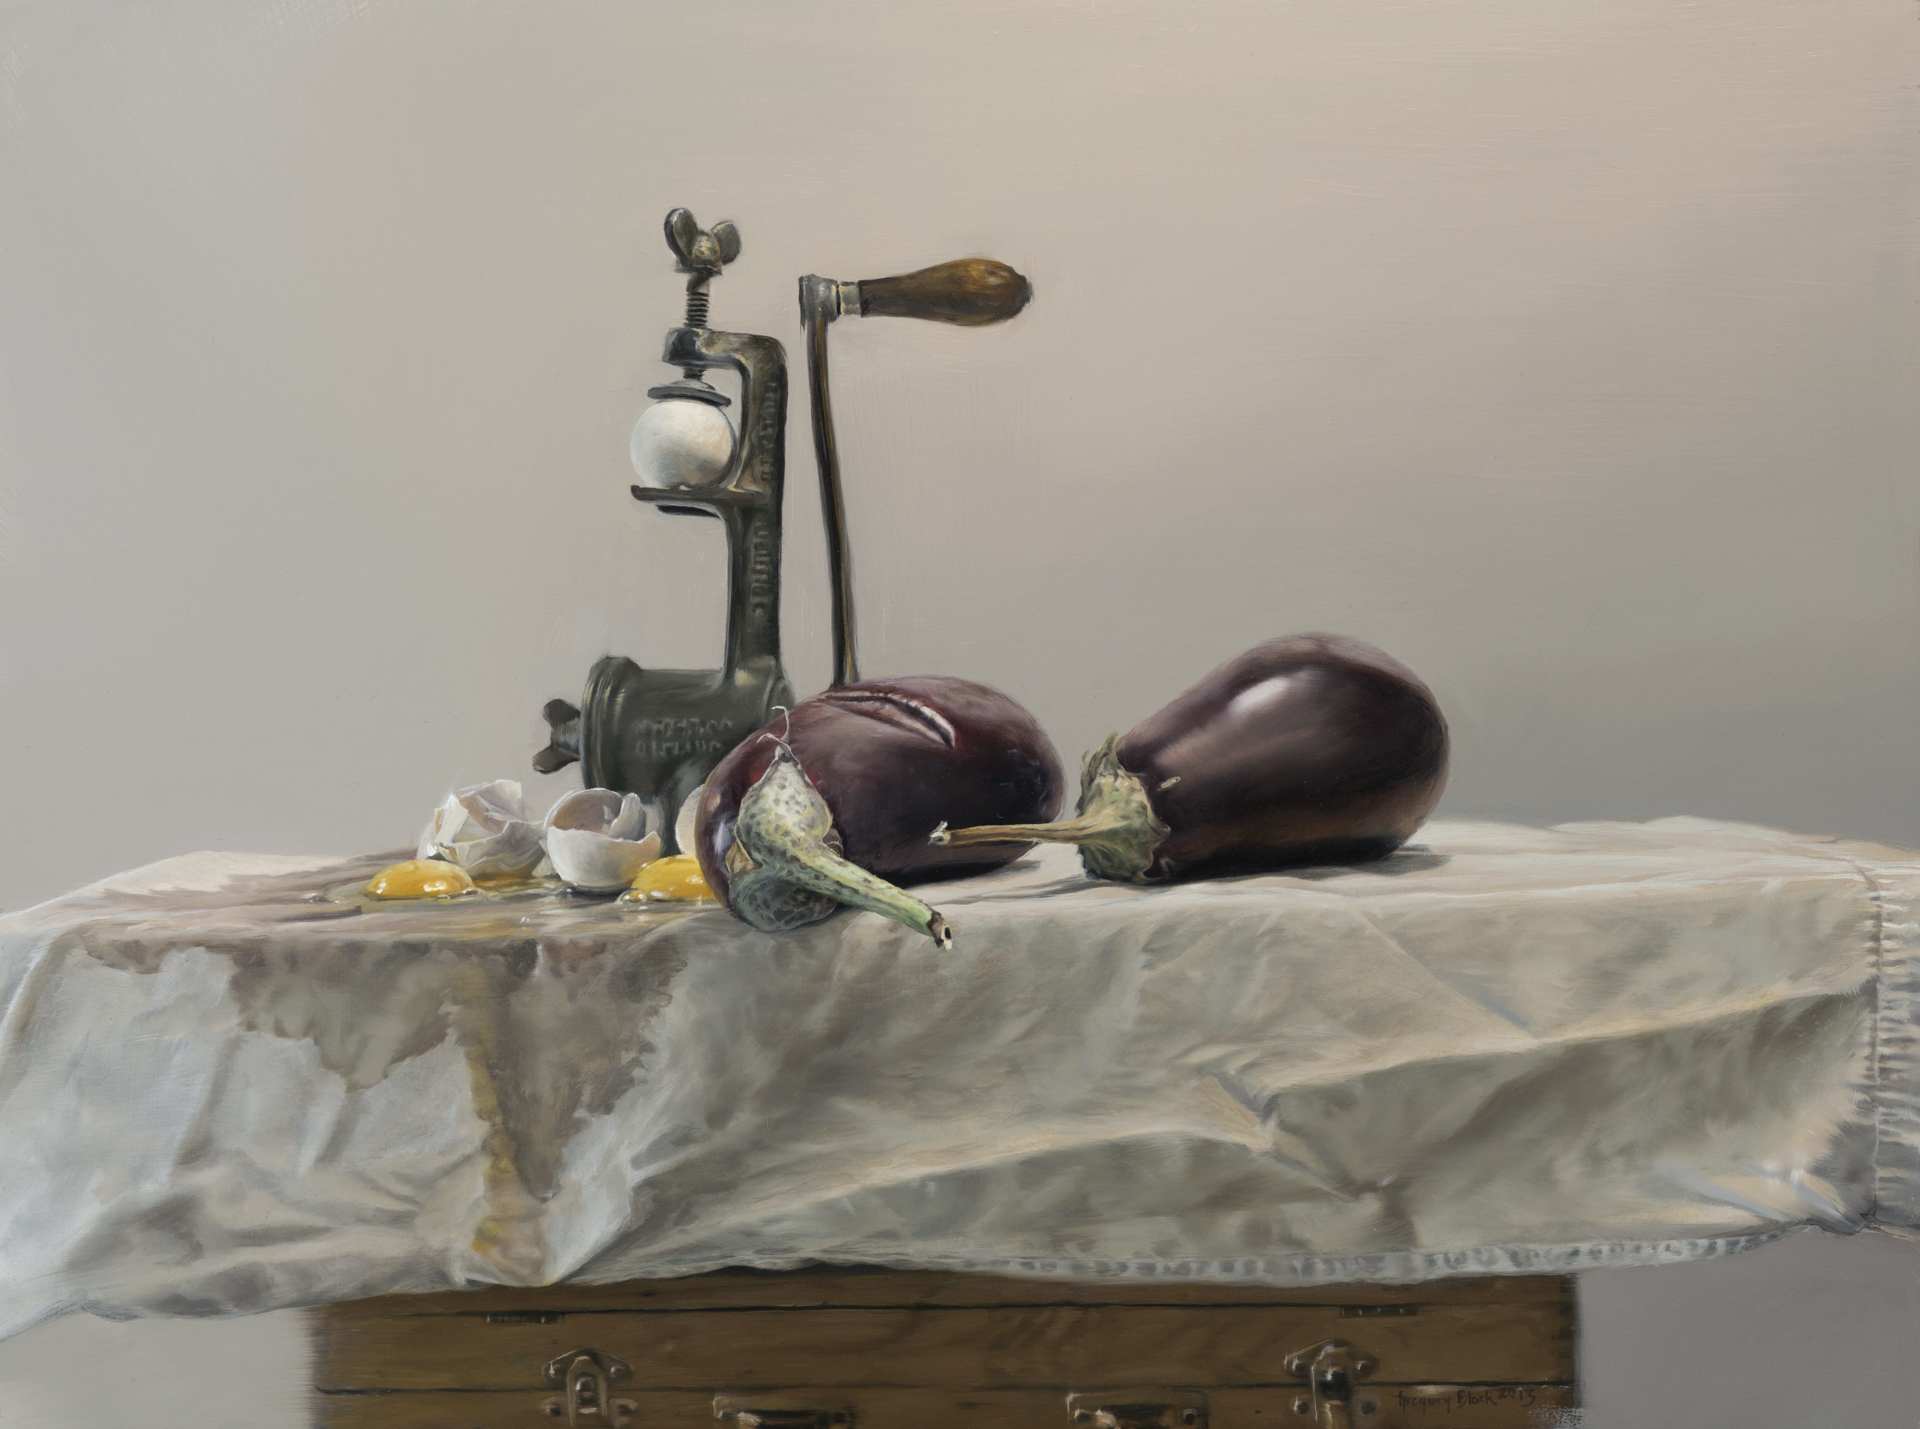 Two Eggplants by Gregory Block